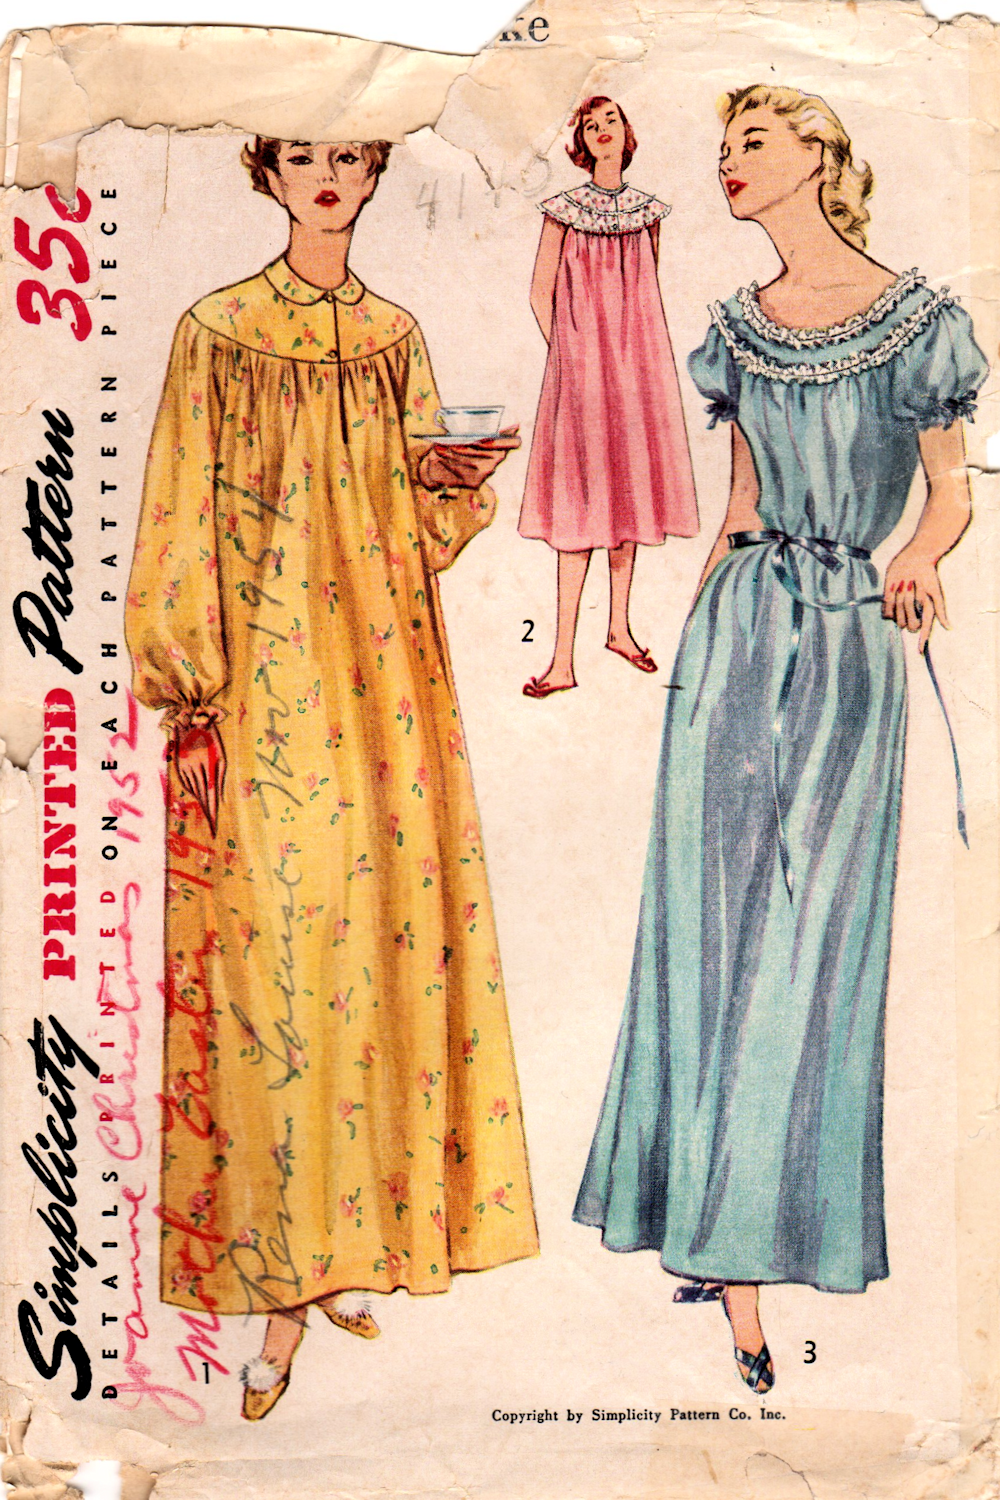 The Midvale Cottage Post: Scraps from the Past: A 1950s Flannel ...